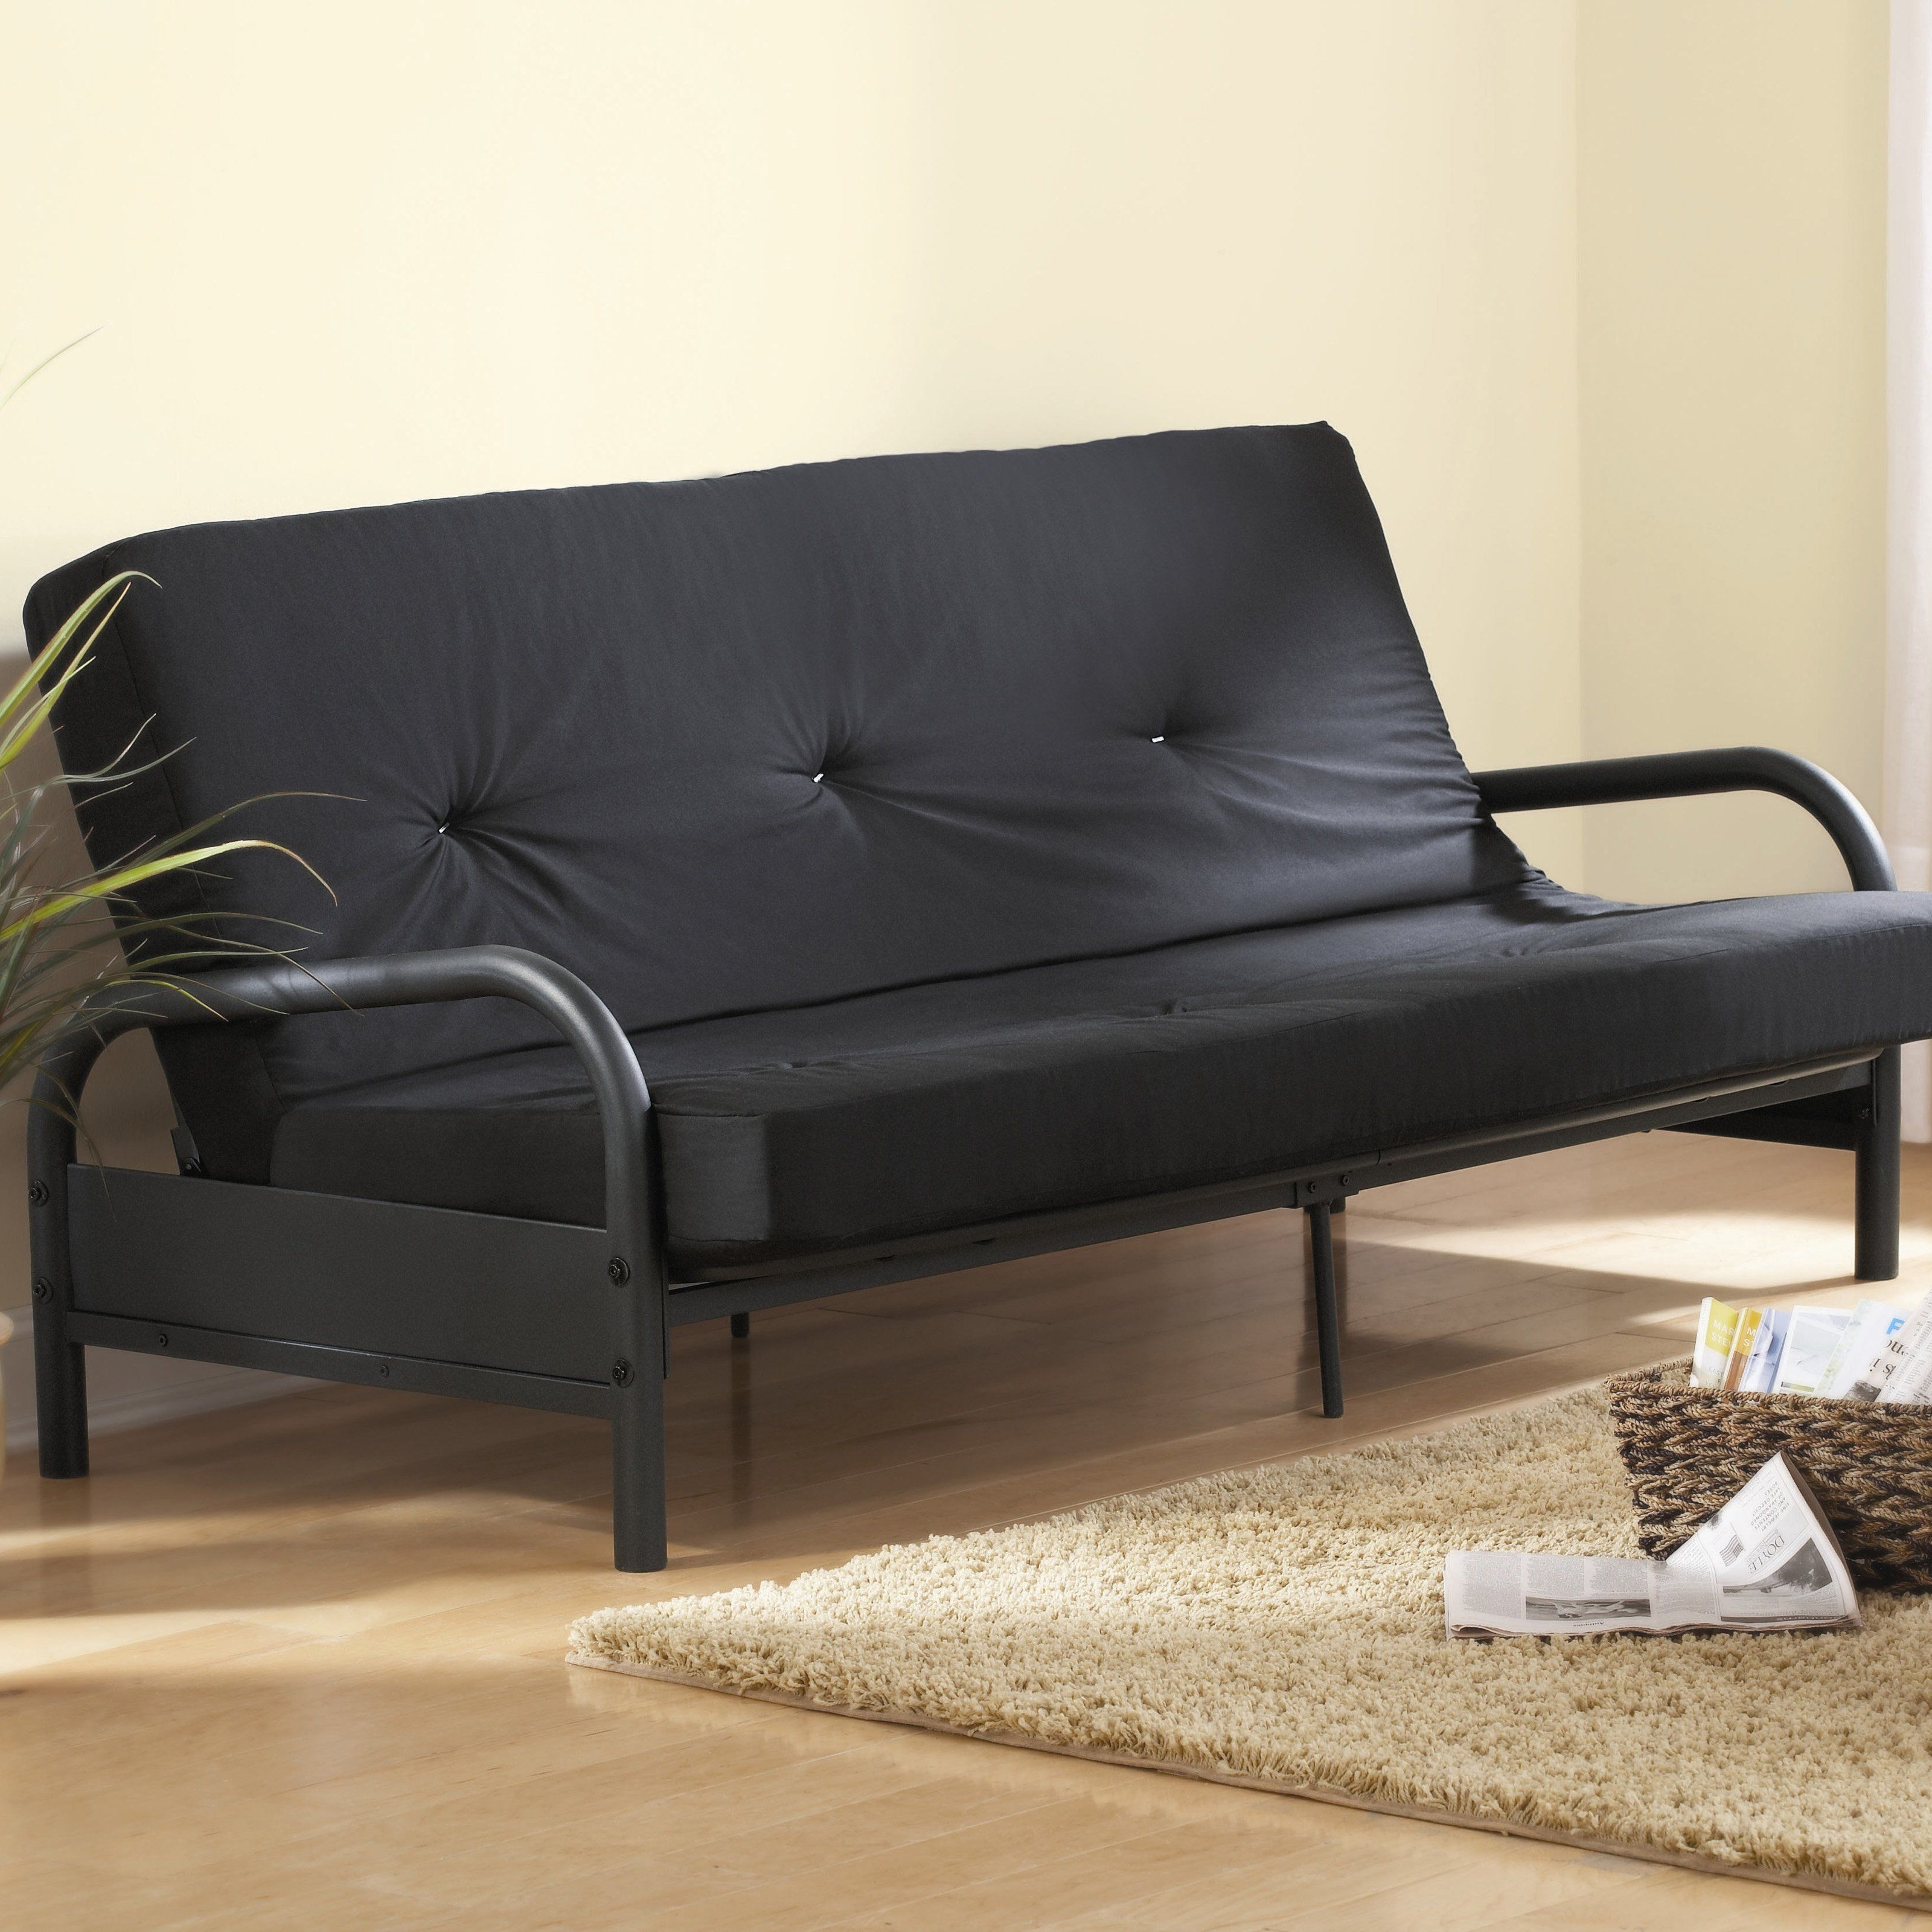 cool Couch Bed Walmart , Good Couch Bed Walmart 9 About Remodel